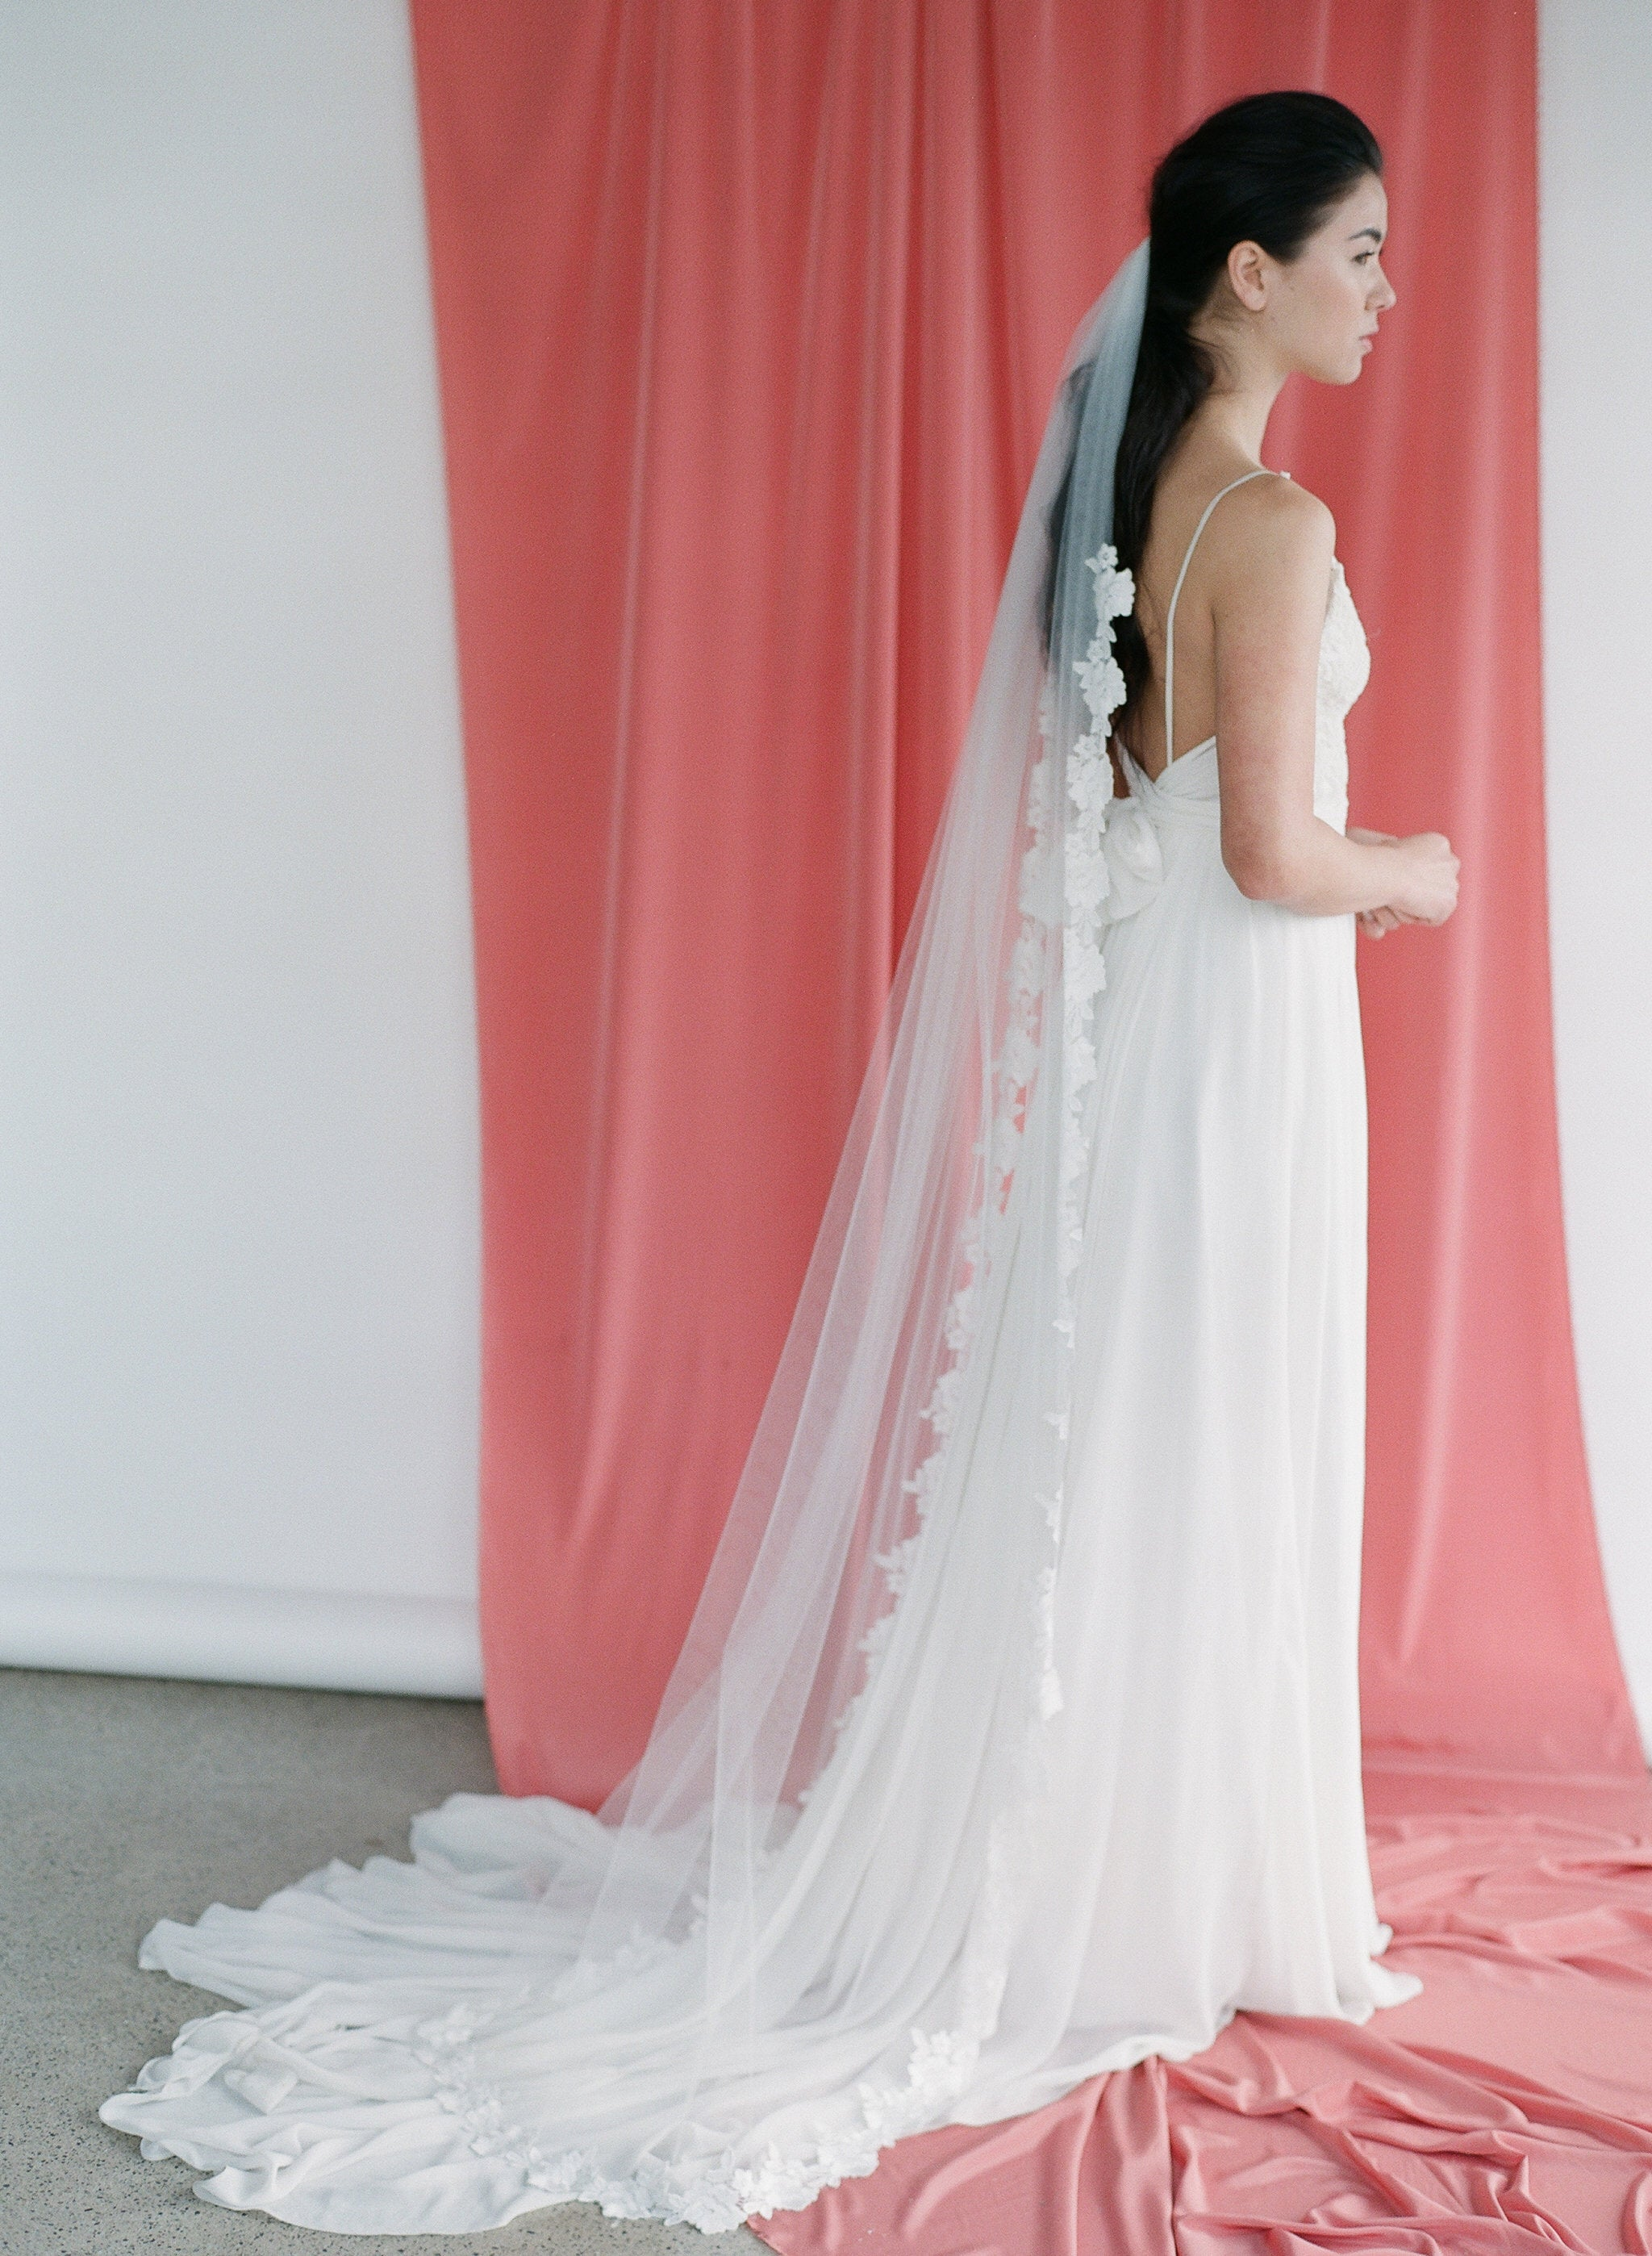 Classic tulle veil with a floral lace trim